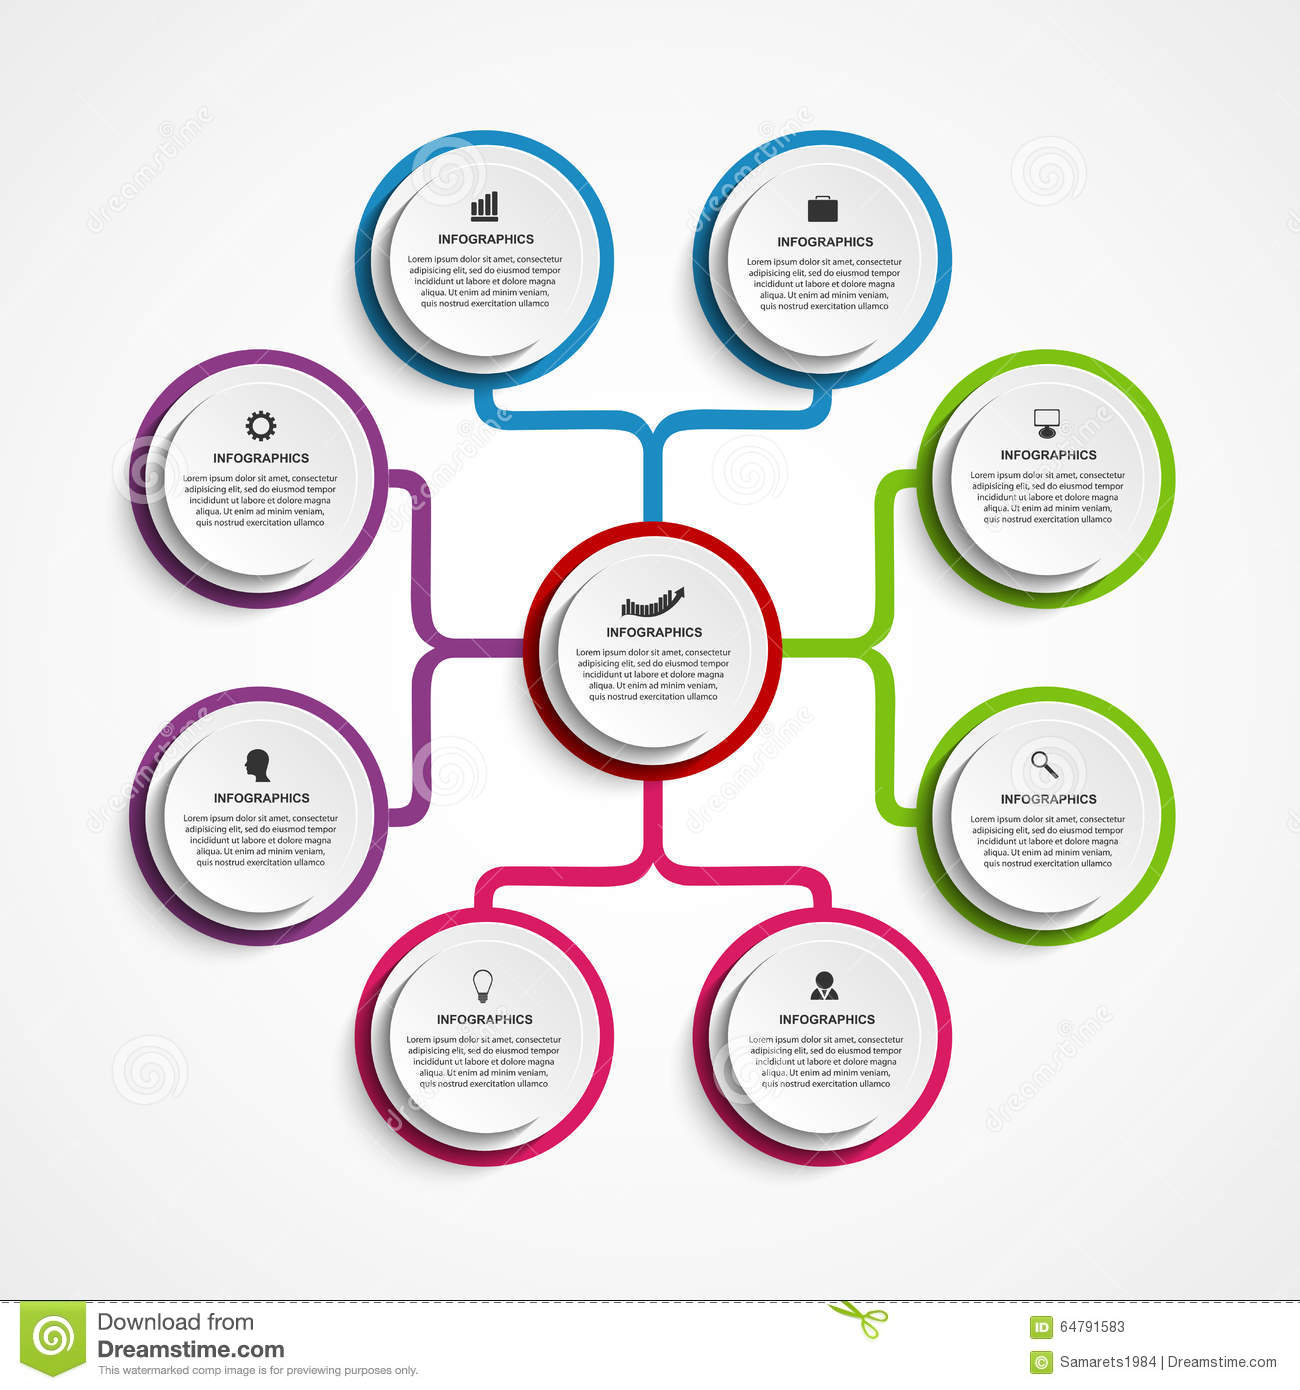 Infographic Design Organization Chart Template. Vector